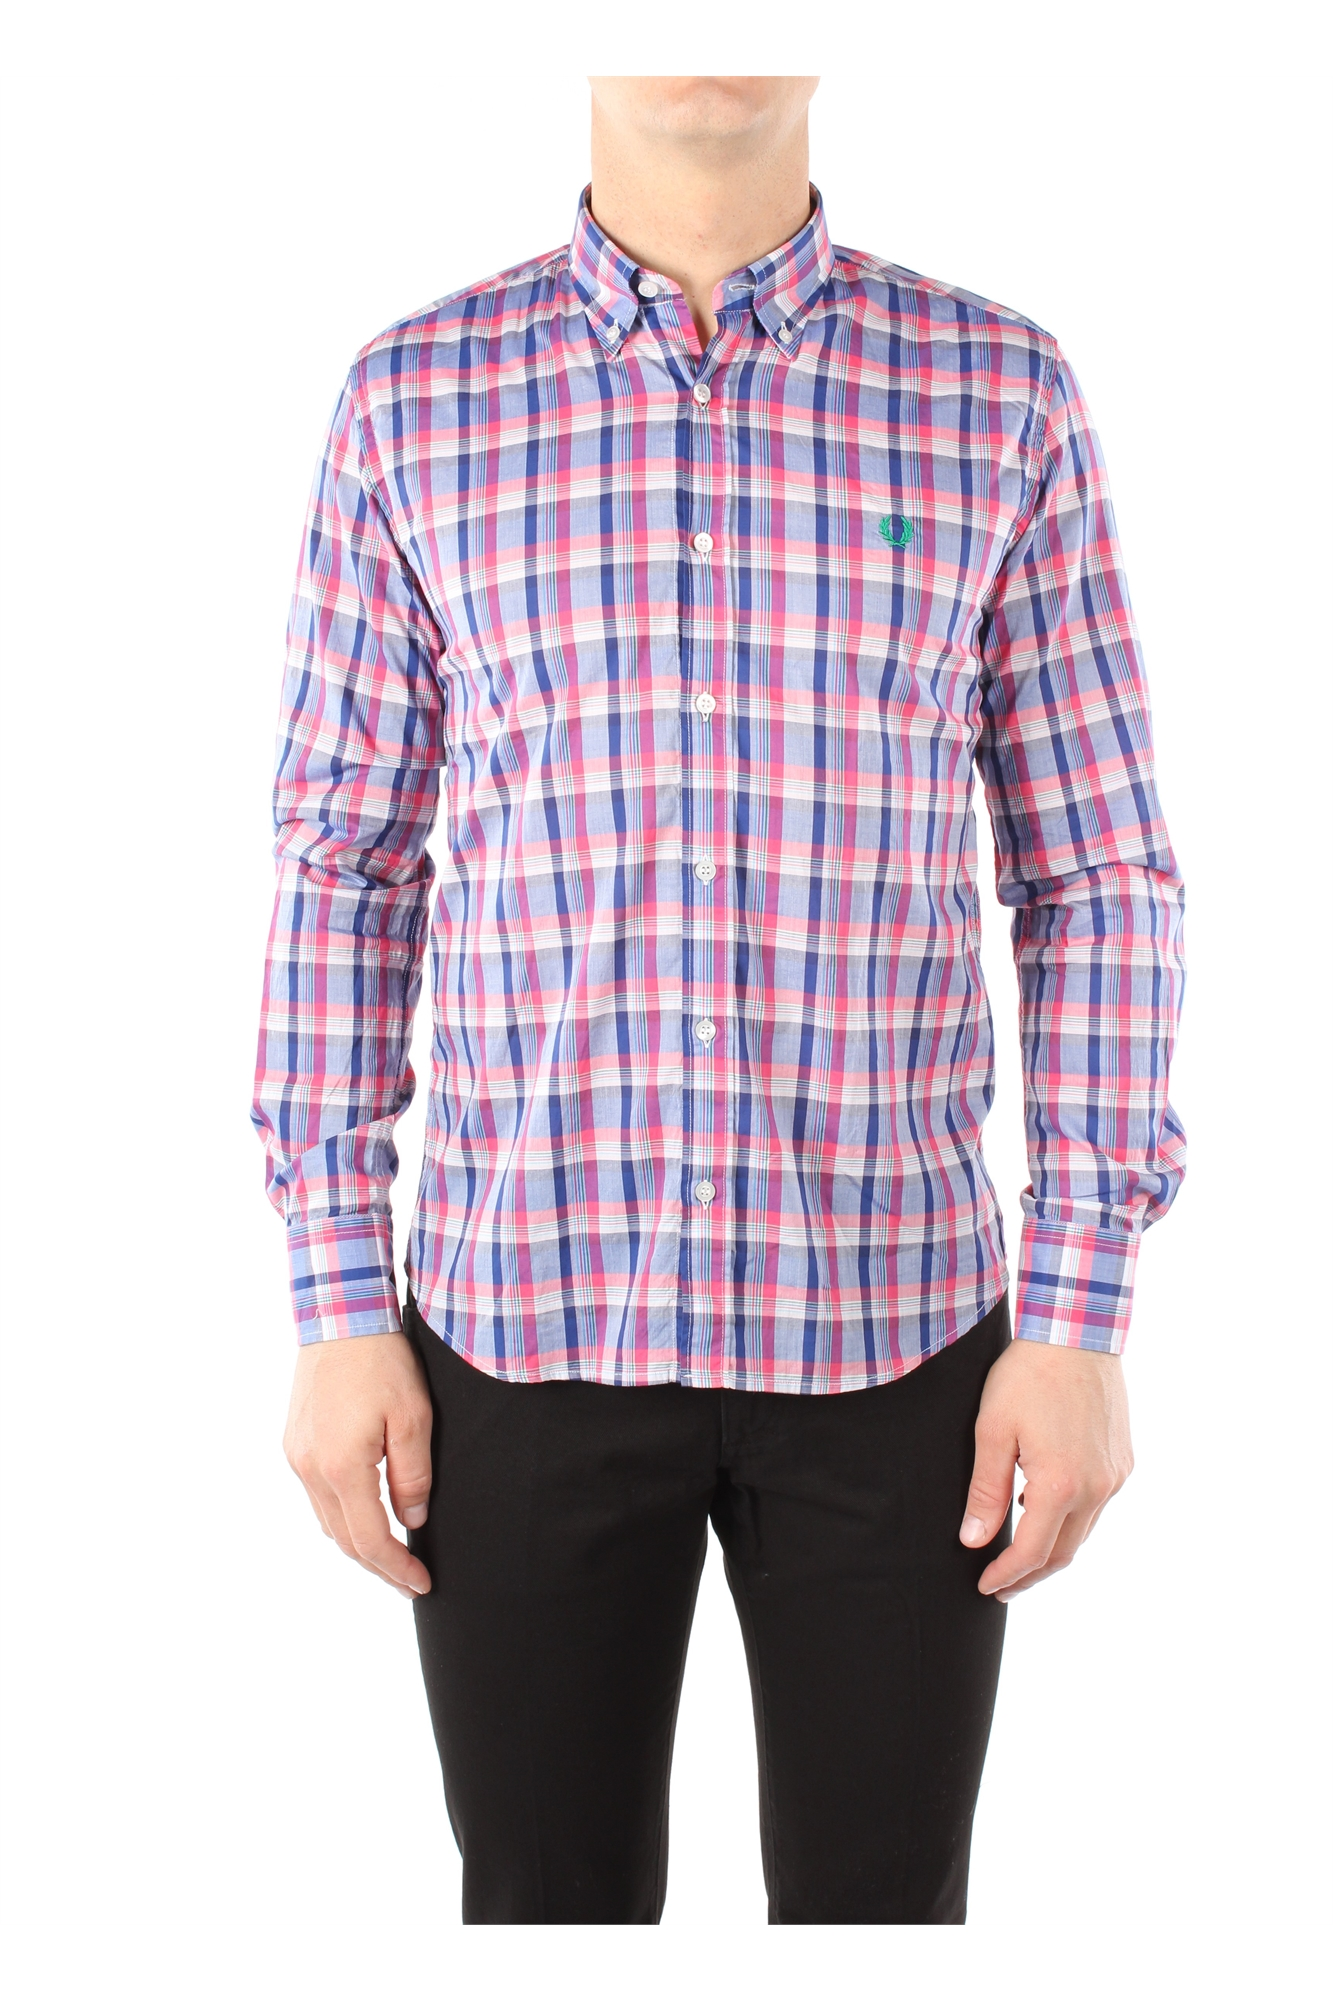 Shirts Fred Perry Men Cotton Multicolor 30213555V0031 | eBay